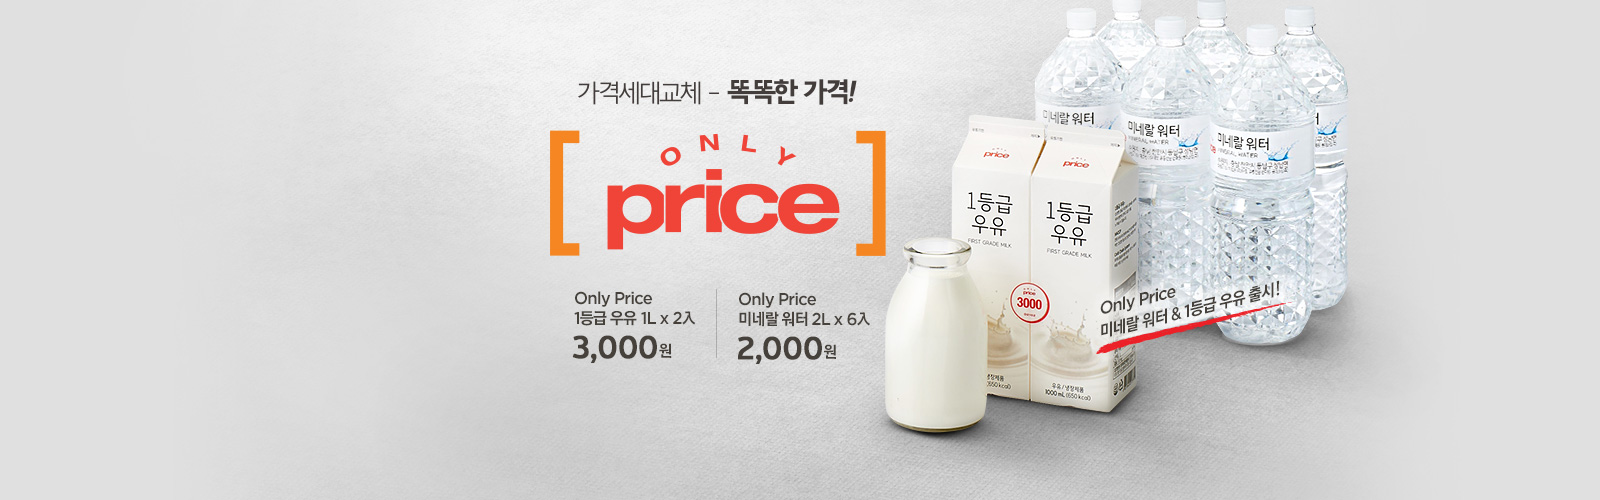 Only Price